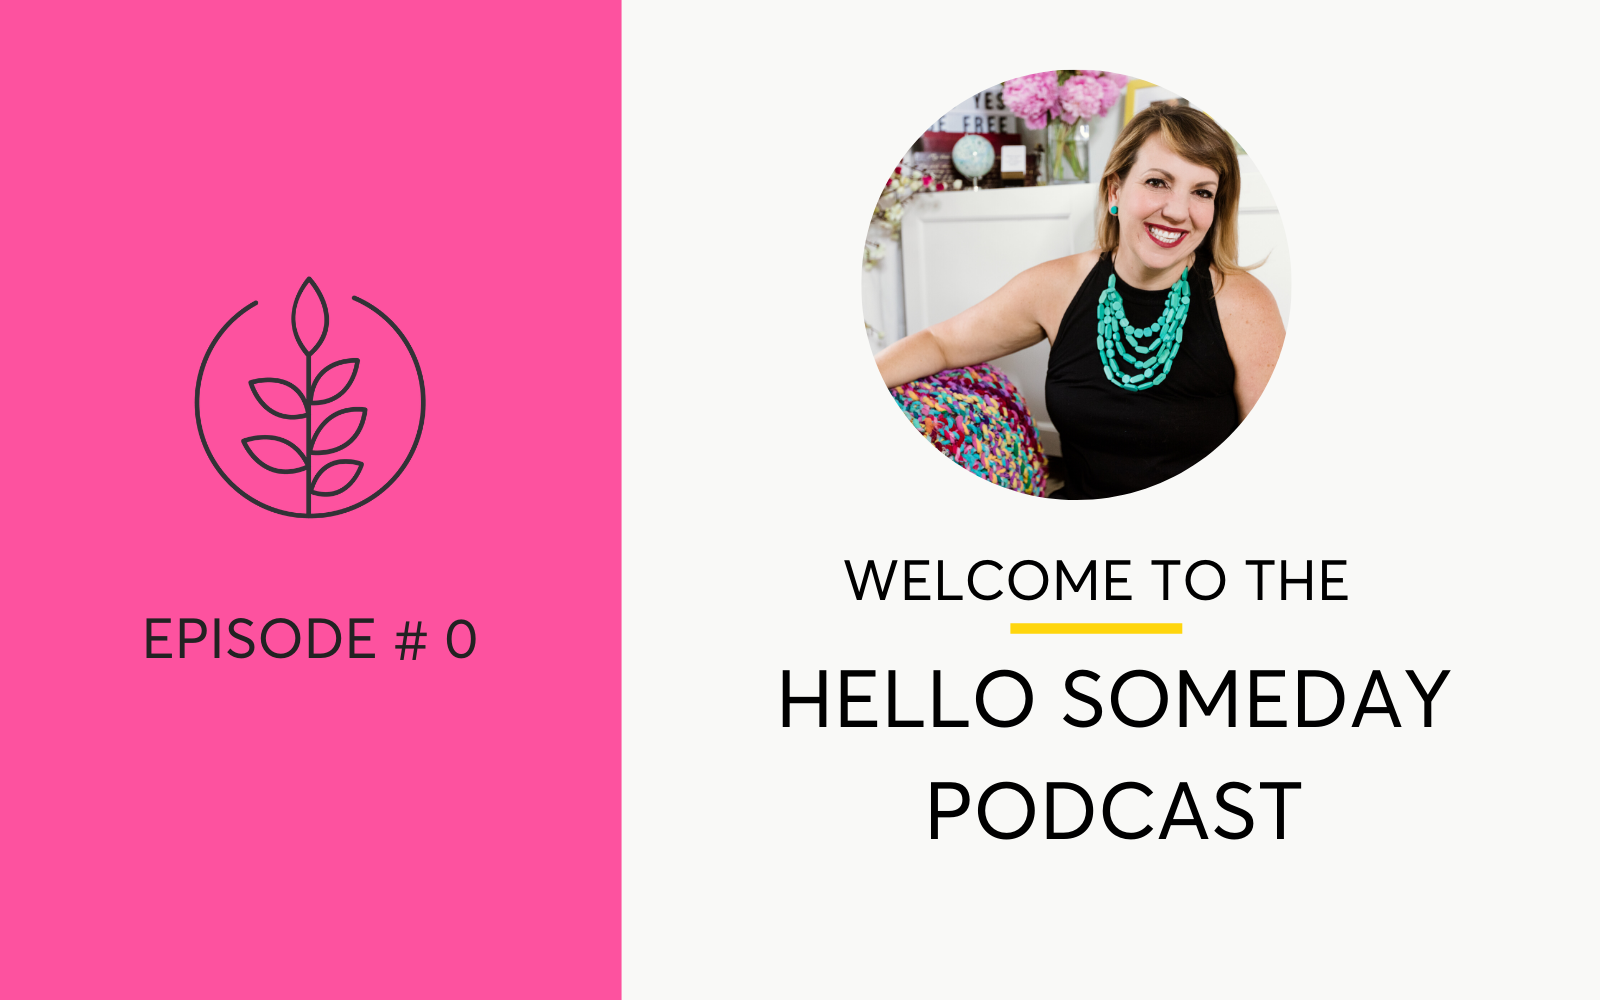 Introducing The Hello Someday Podcast with Casey McGuire Davidson